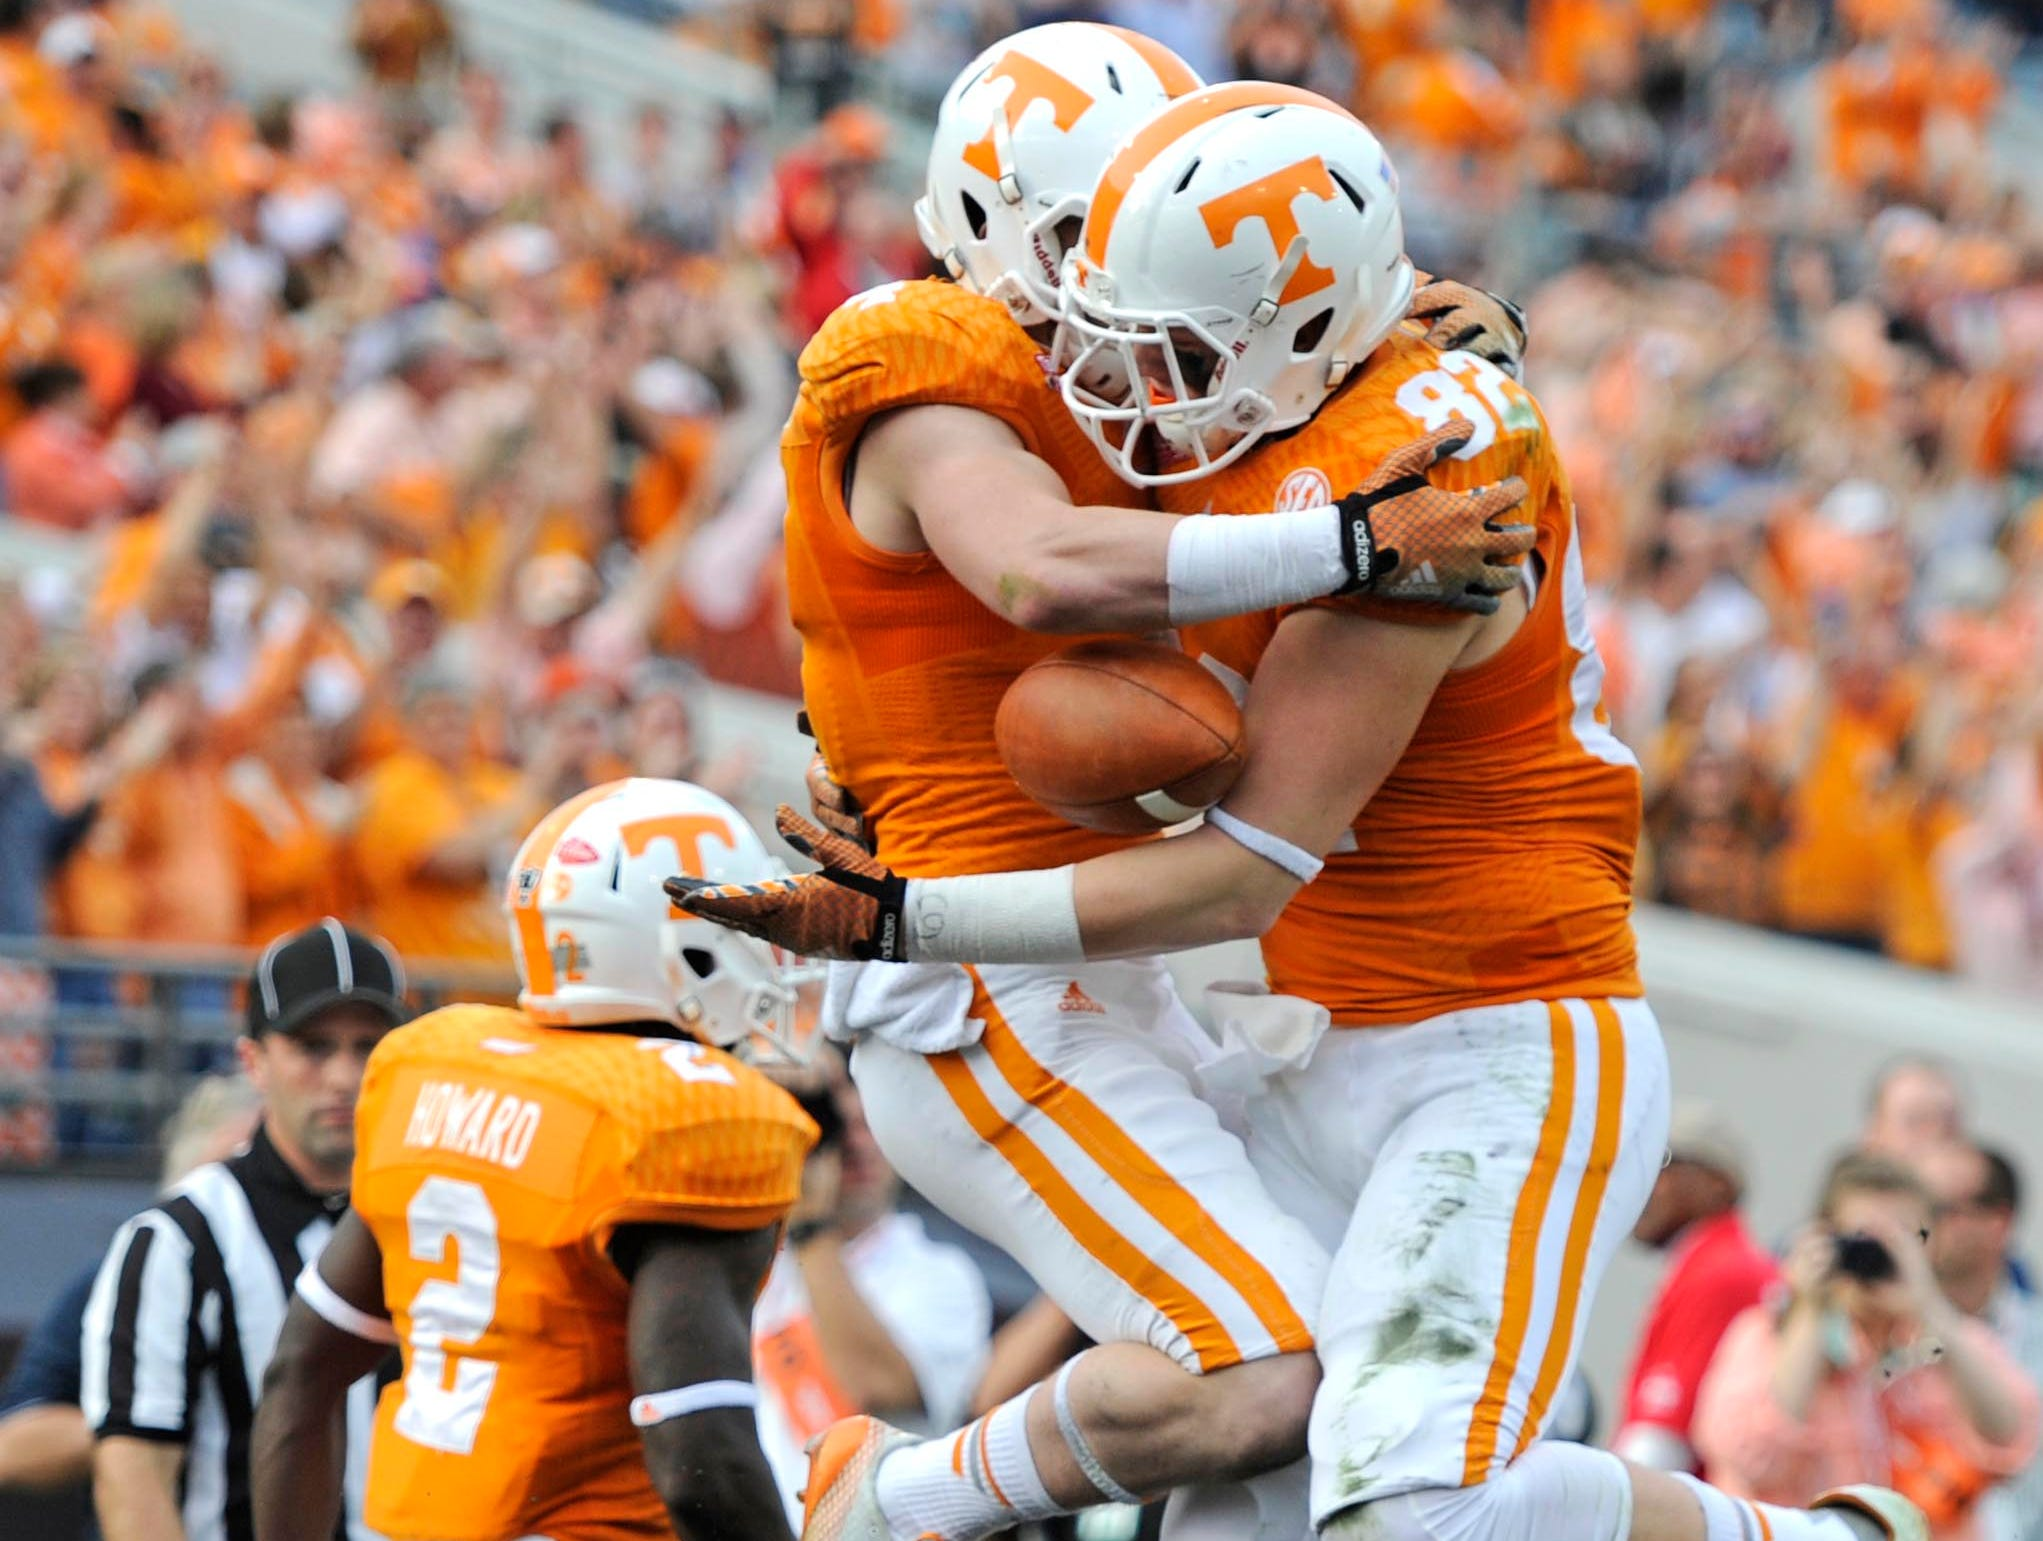 Tennessee wide receiver Vic Wharton (4) and Tennessee tight end Ethan Wolf (82) celebrate after Wharton scored a touchdown against Iowa during the first half of the Taxslayer Bowl at EverBank Field on Friday, Jan. 2, 2015 in Jacksonville, Fla.